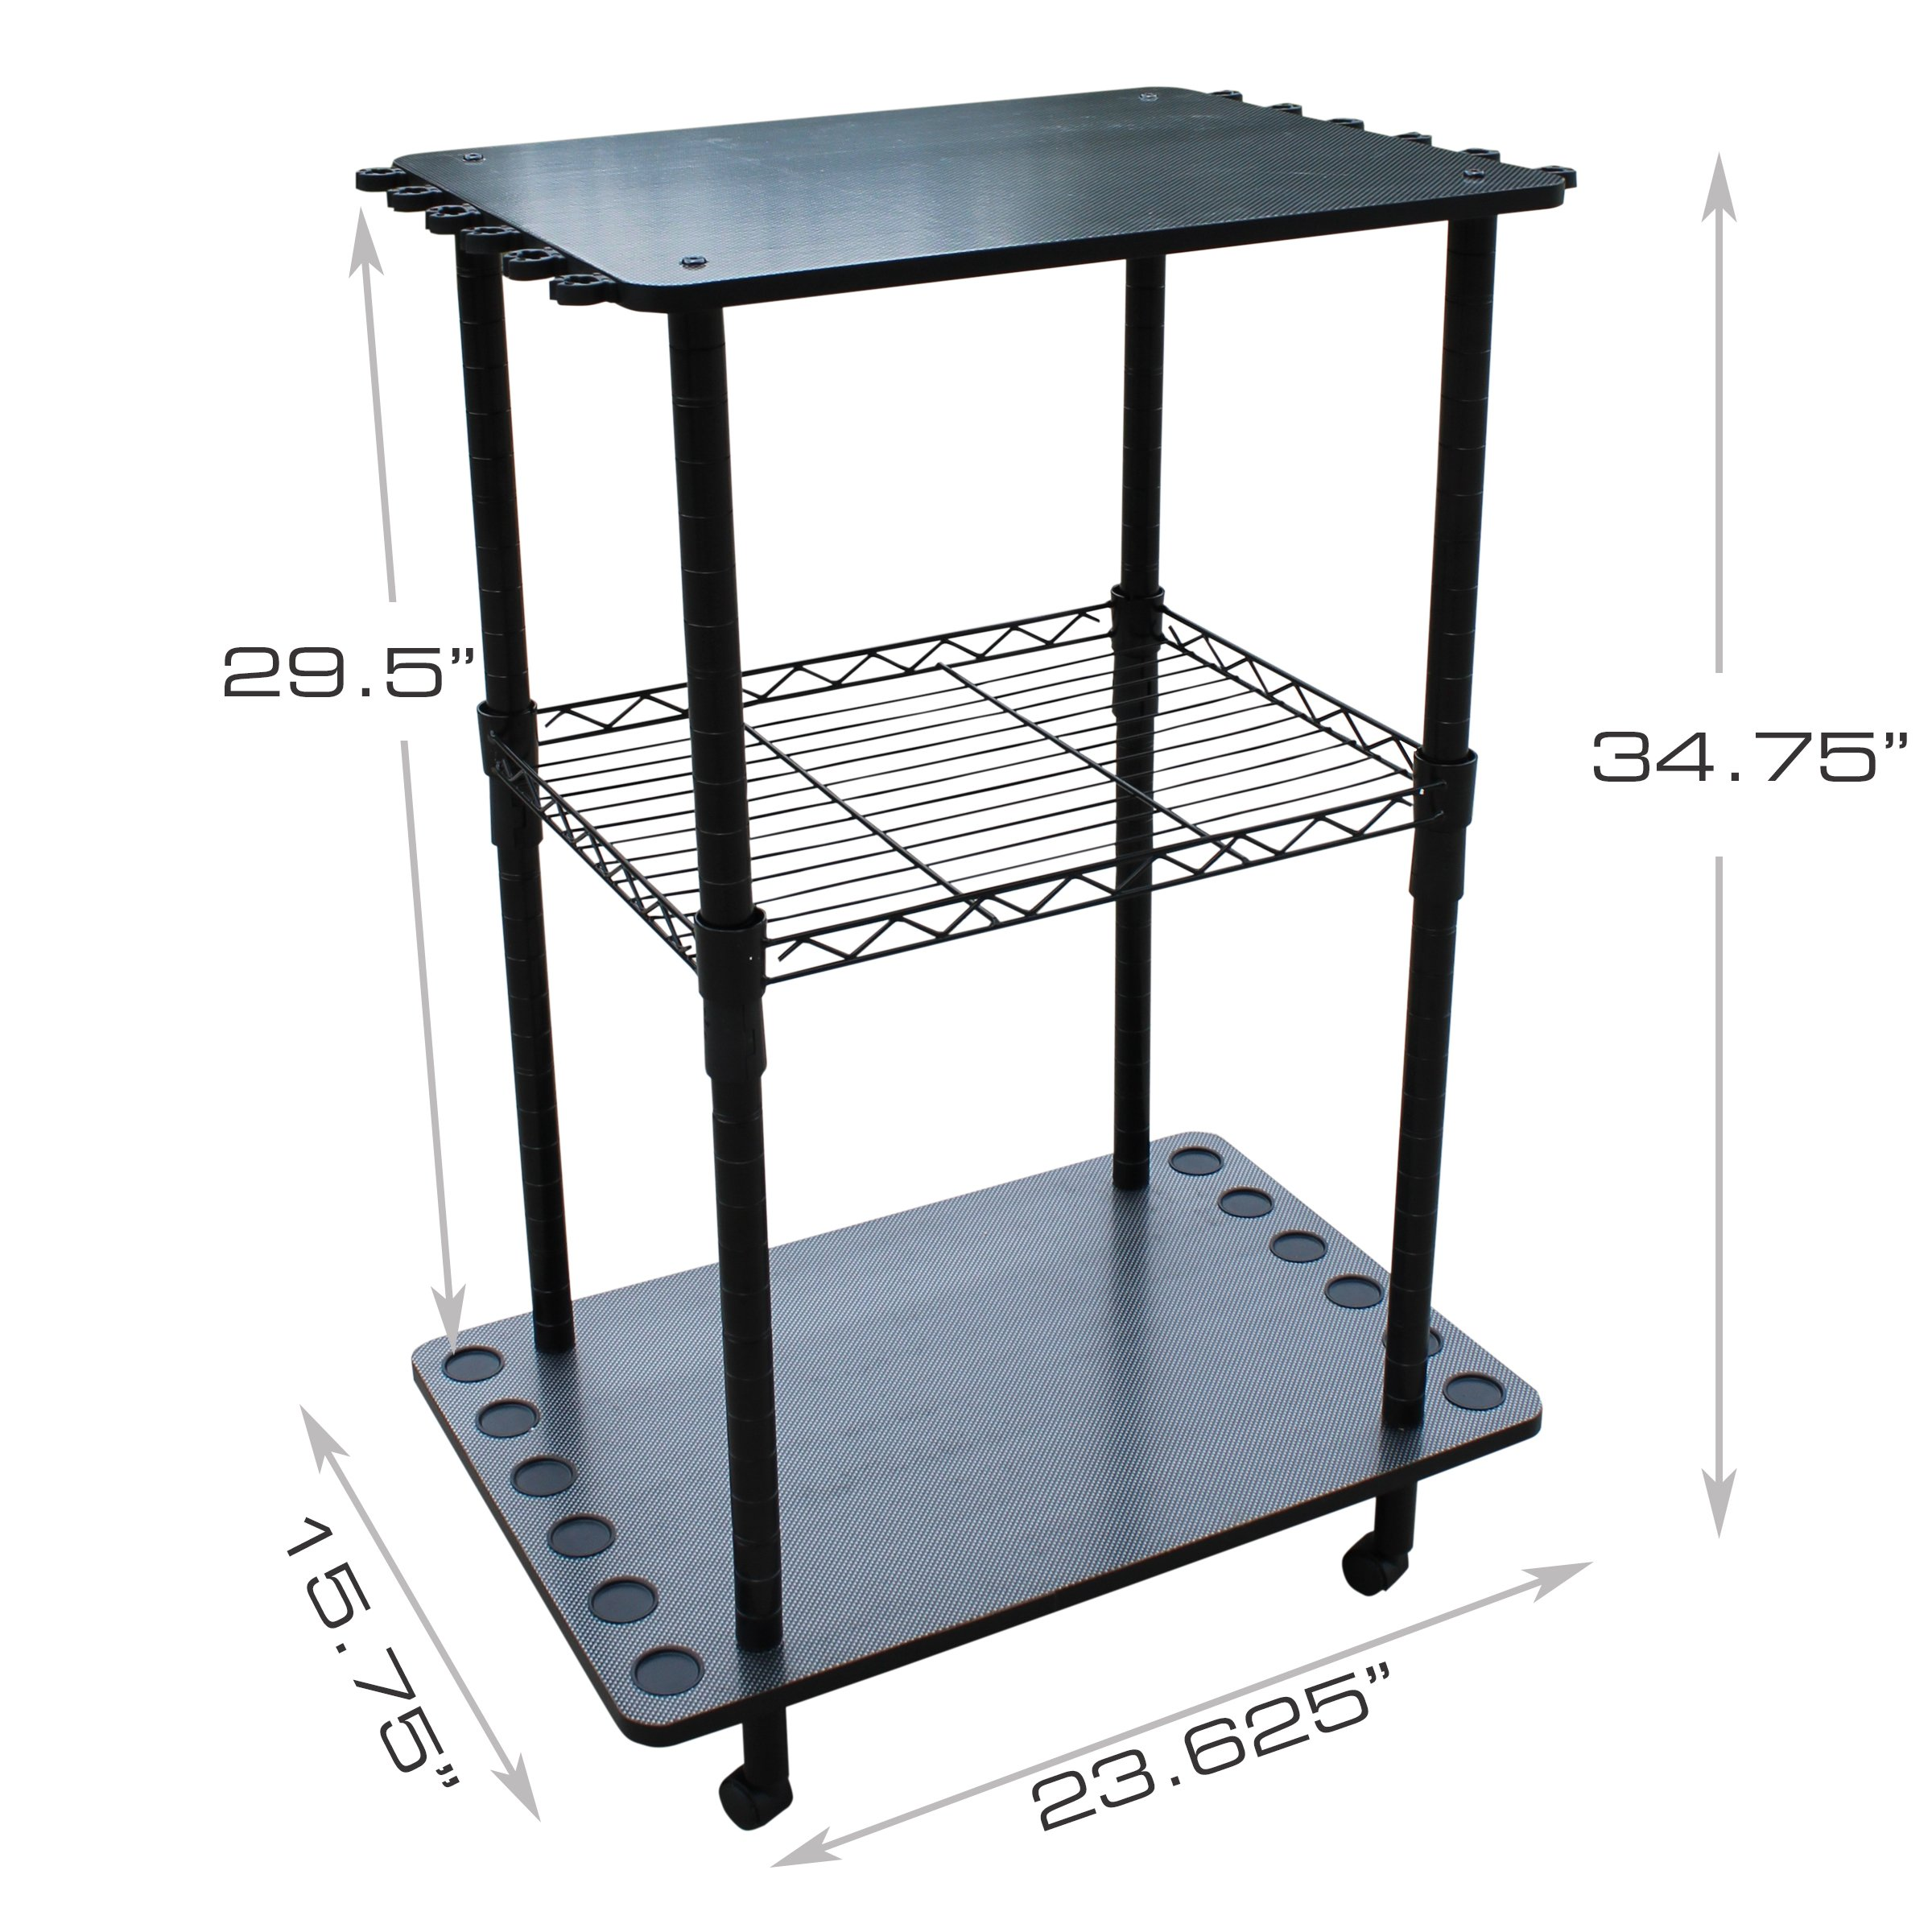 Rush Creek Creations 12 Fishing Rod Storage Tackle Cart - Durable Finish - 5 Minute Assembly by Rush Creek Creations (Image #2)